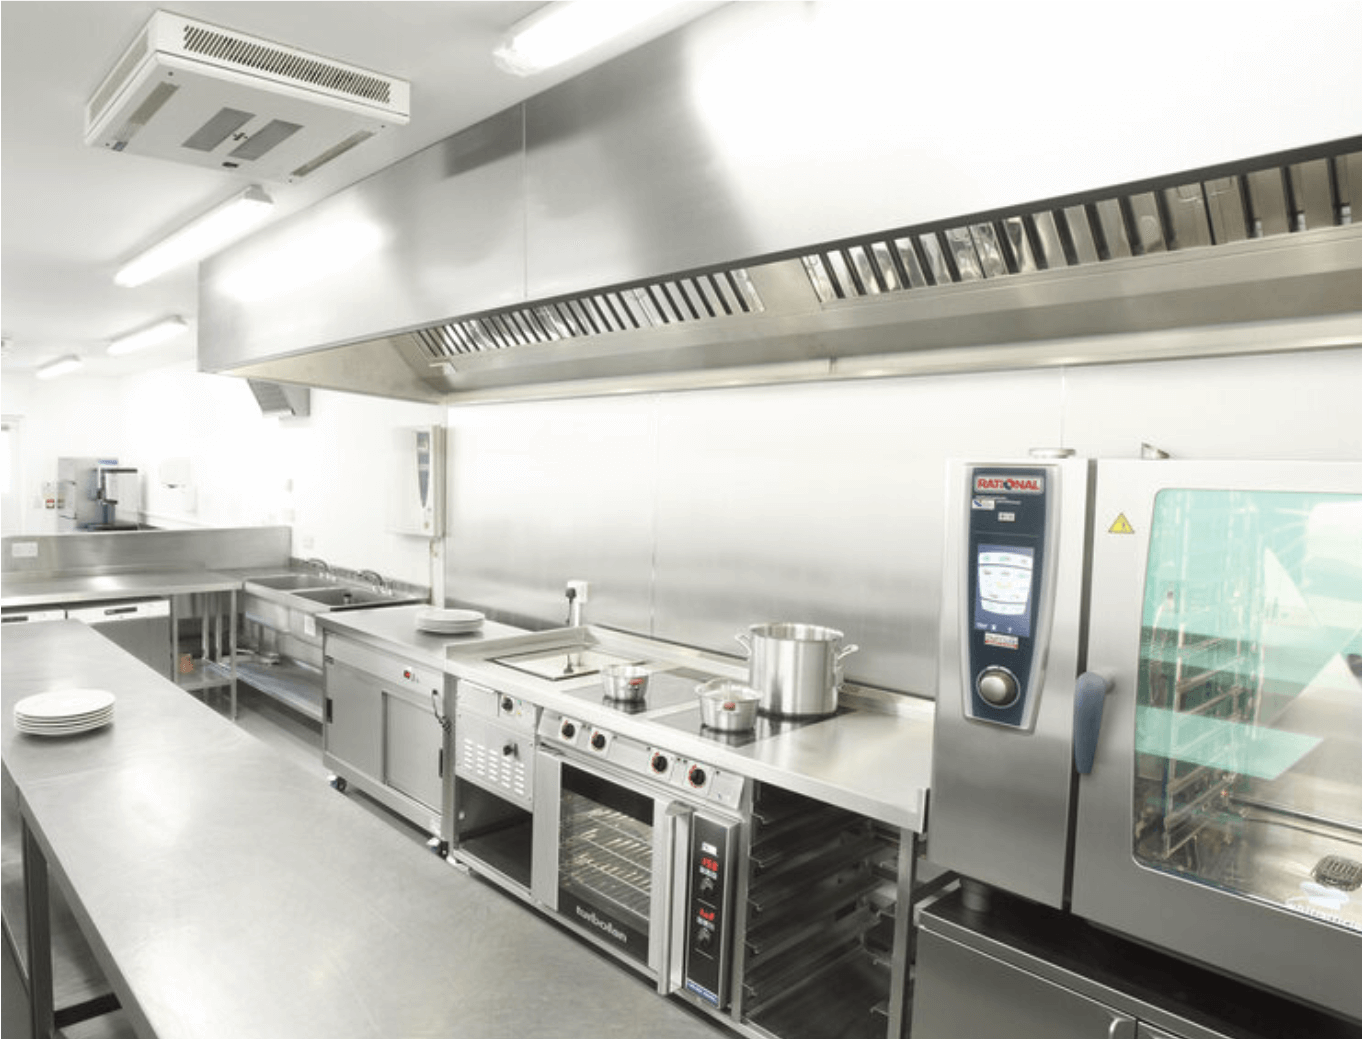 clean commercial kitchen with a professional oven and stainless steel surfaces